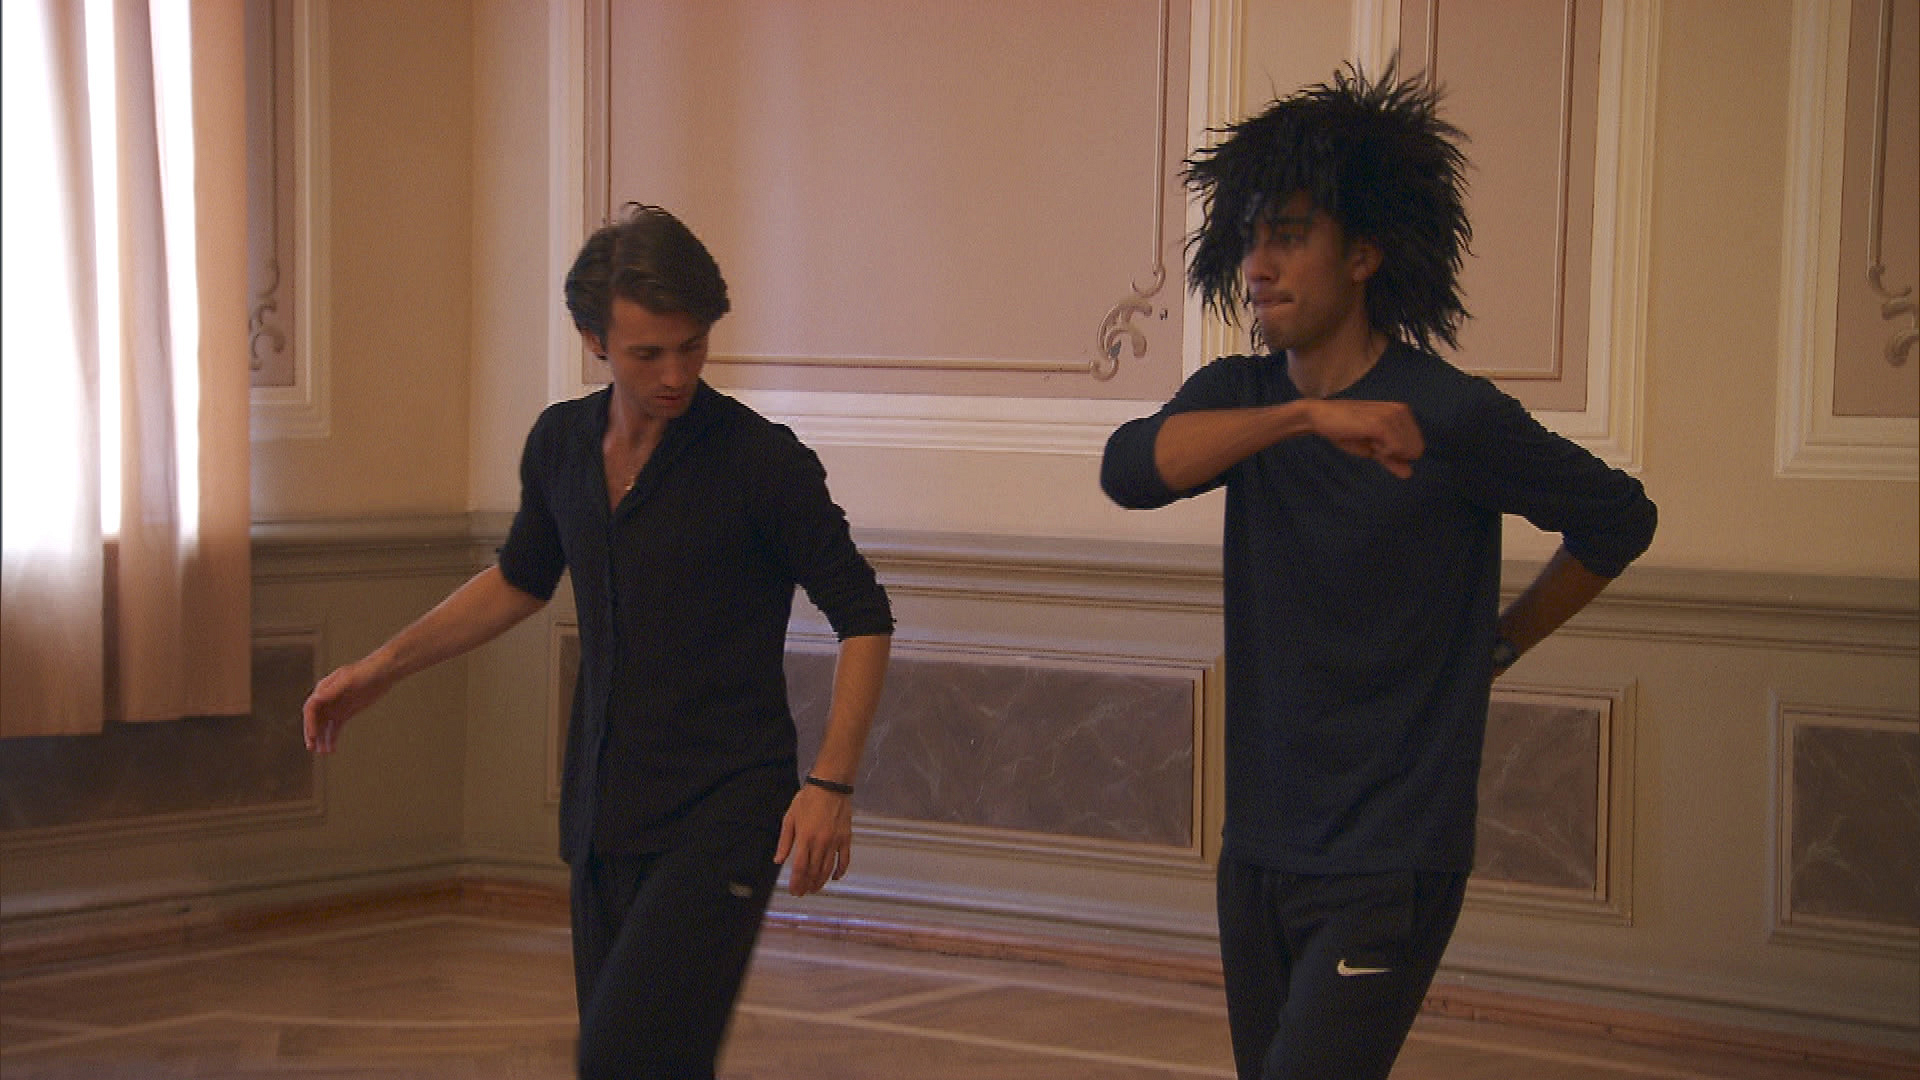 Zach dons a wig before diving into the dance challenge.